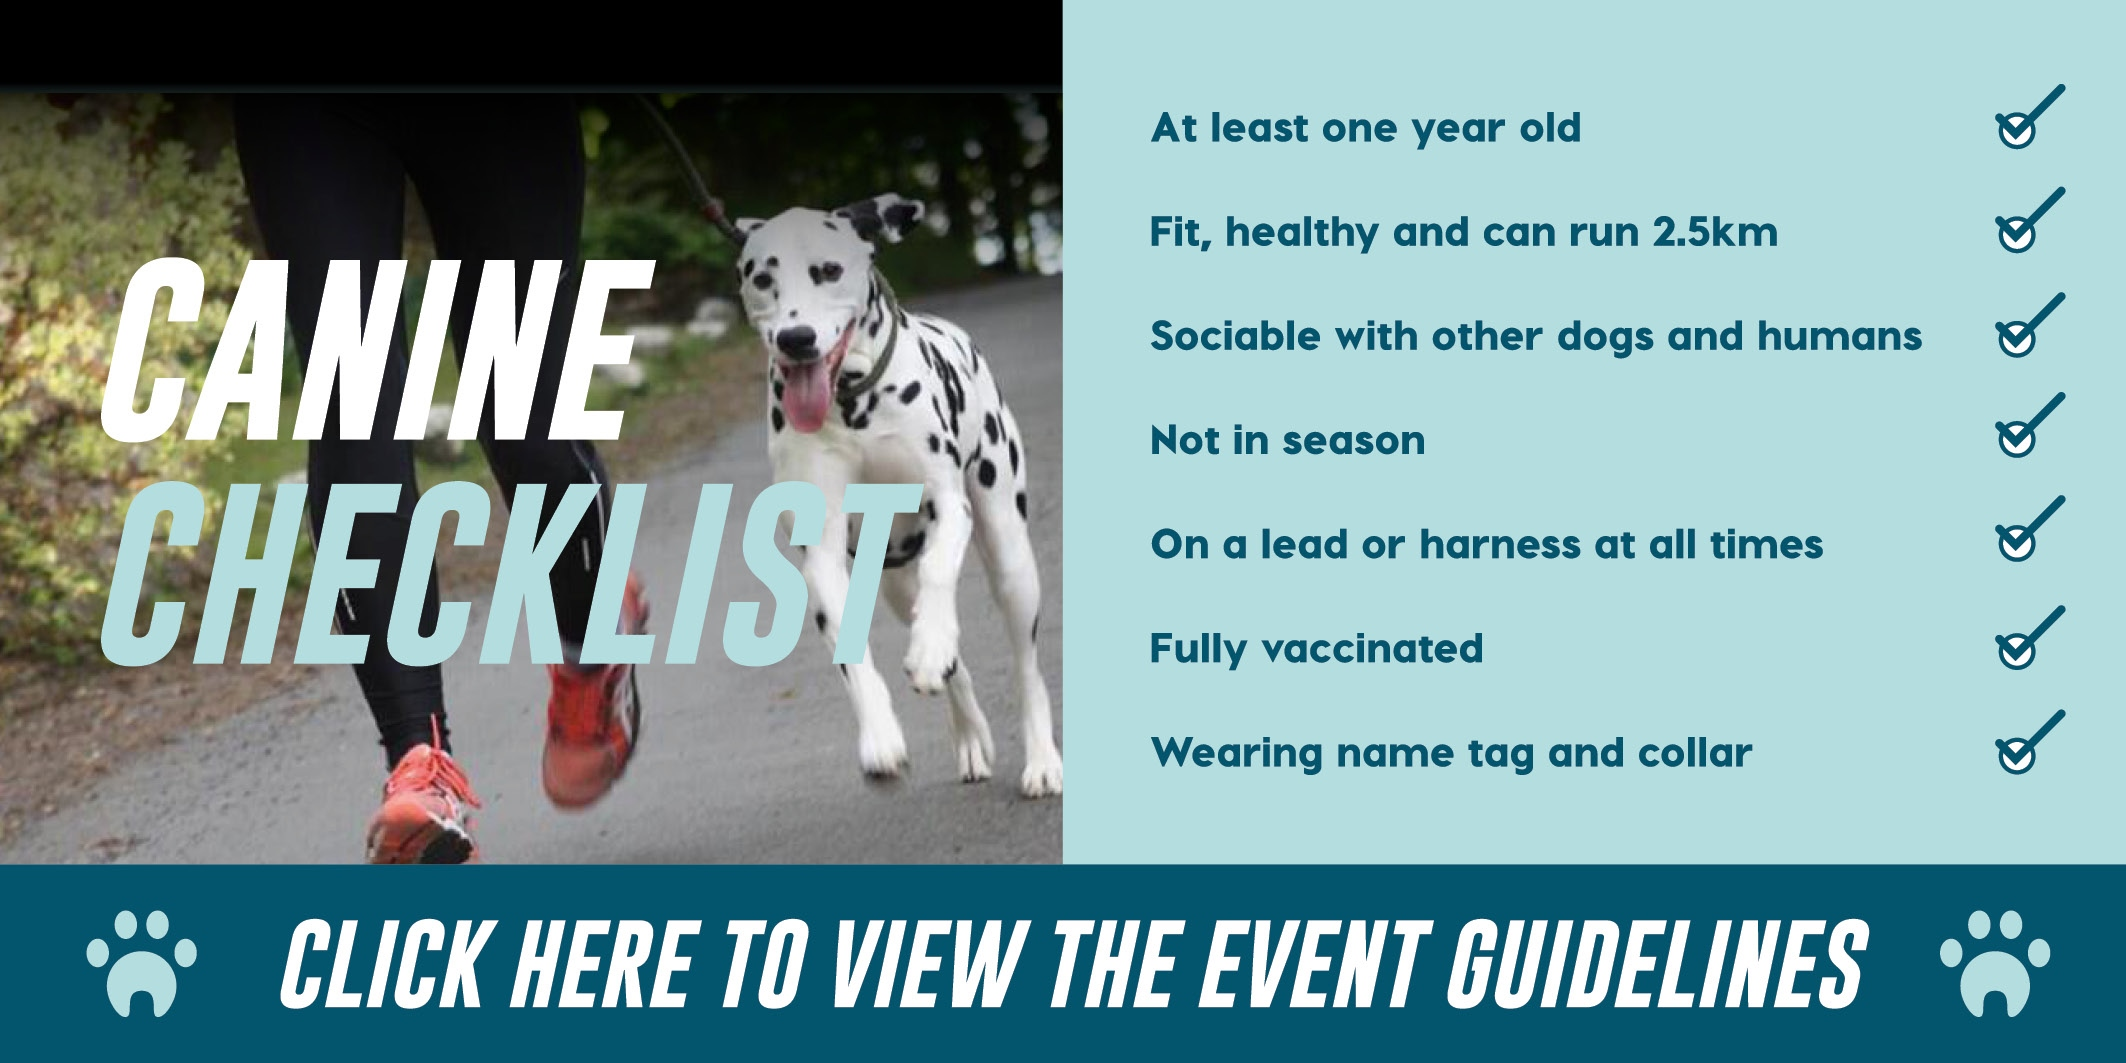 Canine checklist: At least one year old, Fit healthy and can run 2.5km, Sociable with other dogs, Not in season, On a lead or harness at all times, Fully vaccinated, Wearing name tag and collar.